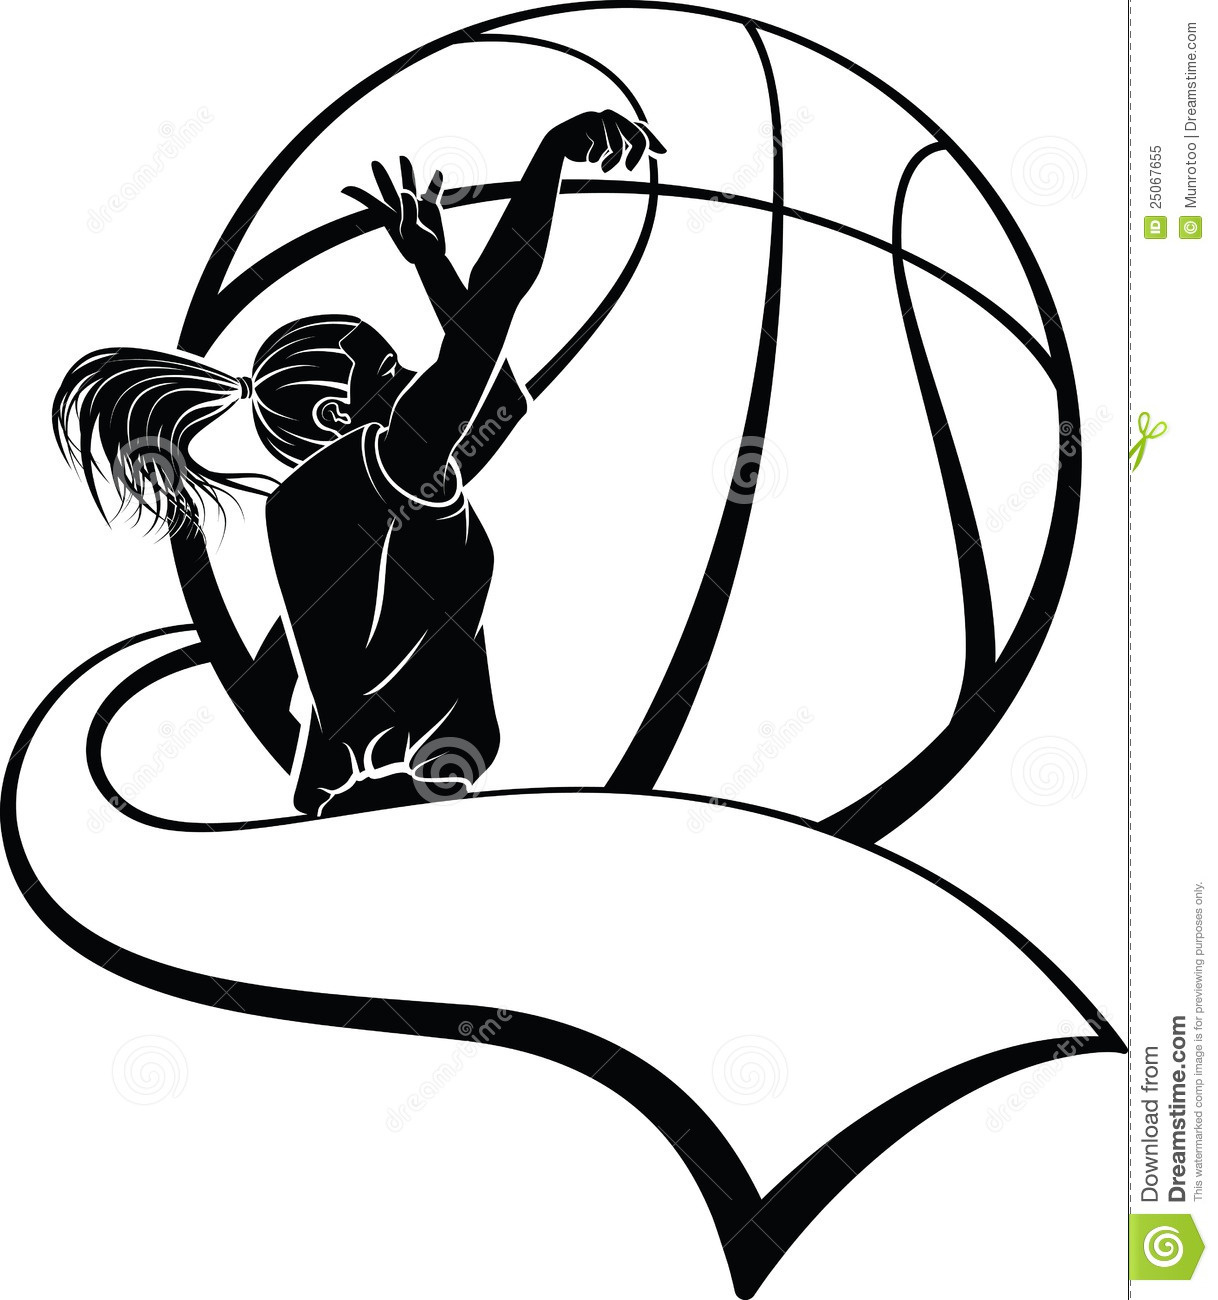 17453 Basketball free clipart.